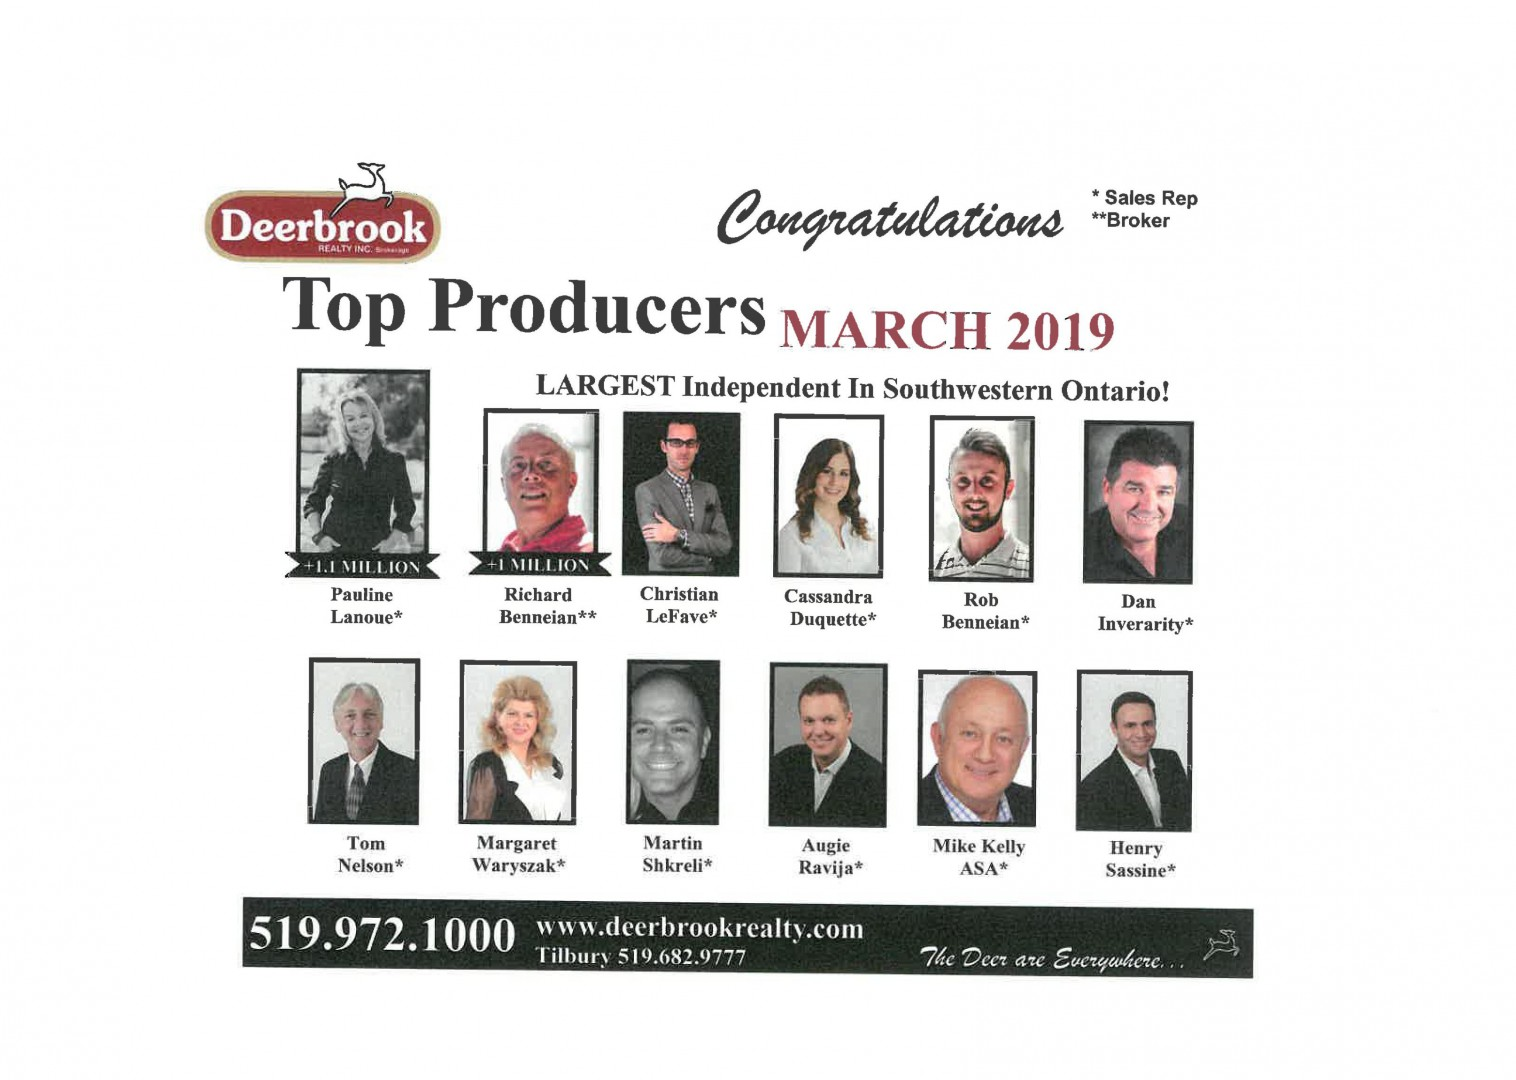 Top 12 Producer for March 2019